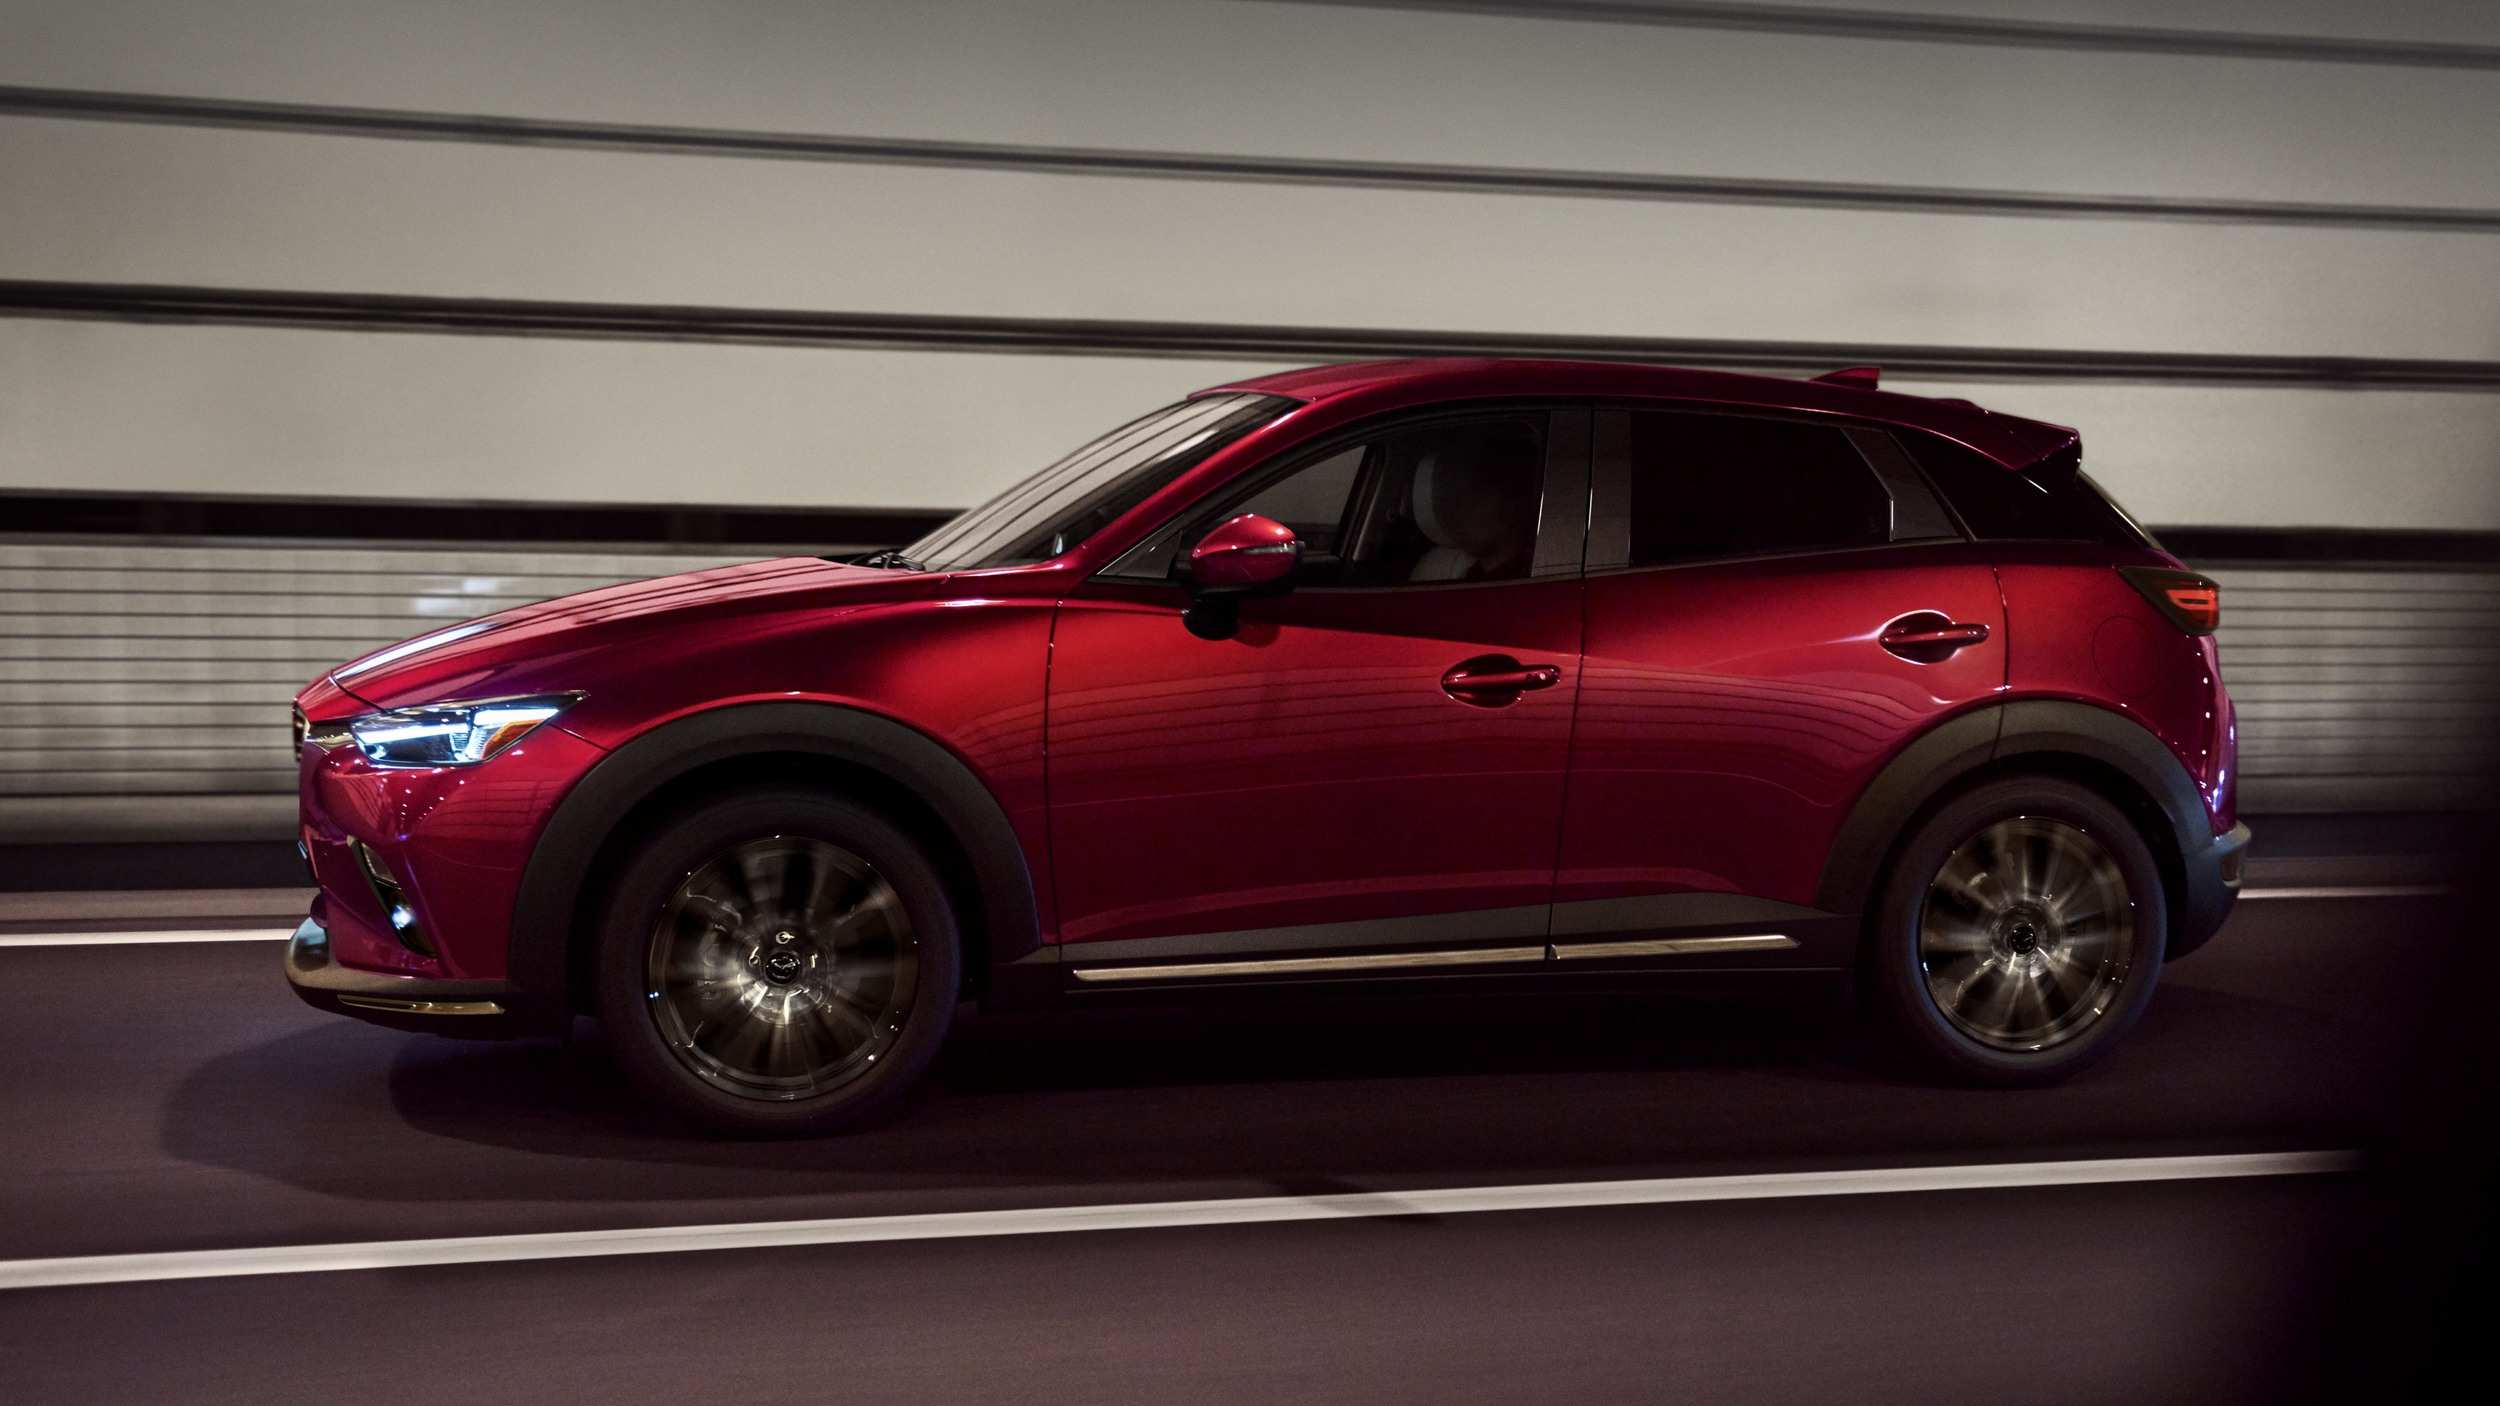 66 Concept of Mazda X3 2020 Overview for Mazda X3 2020